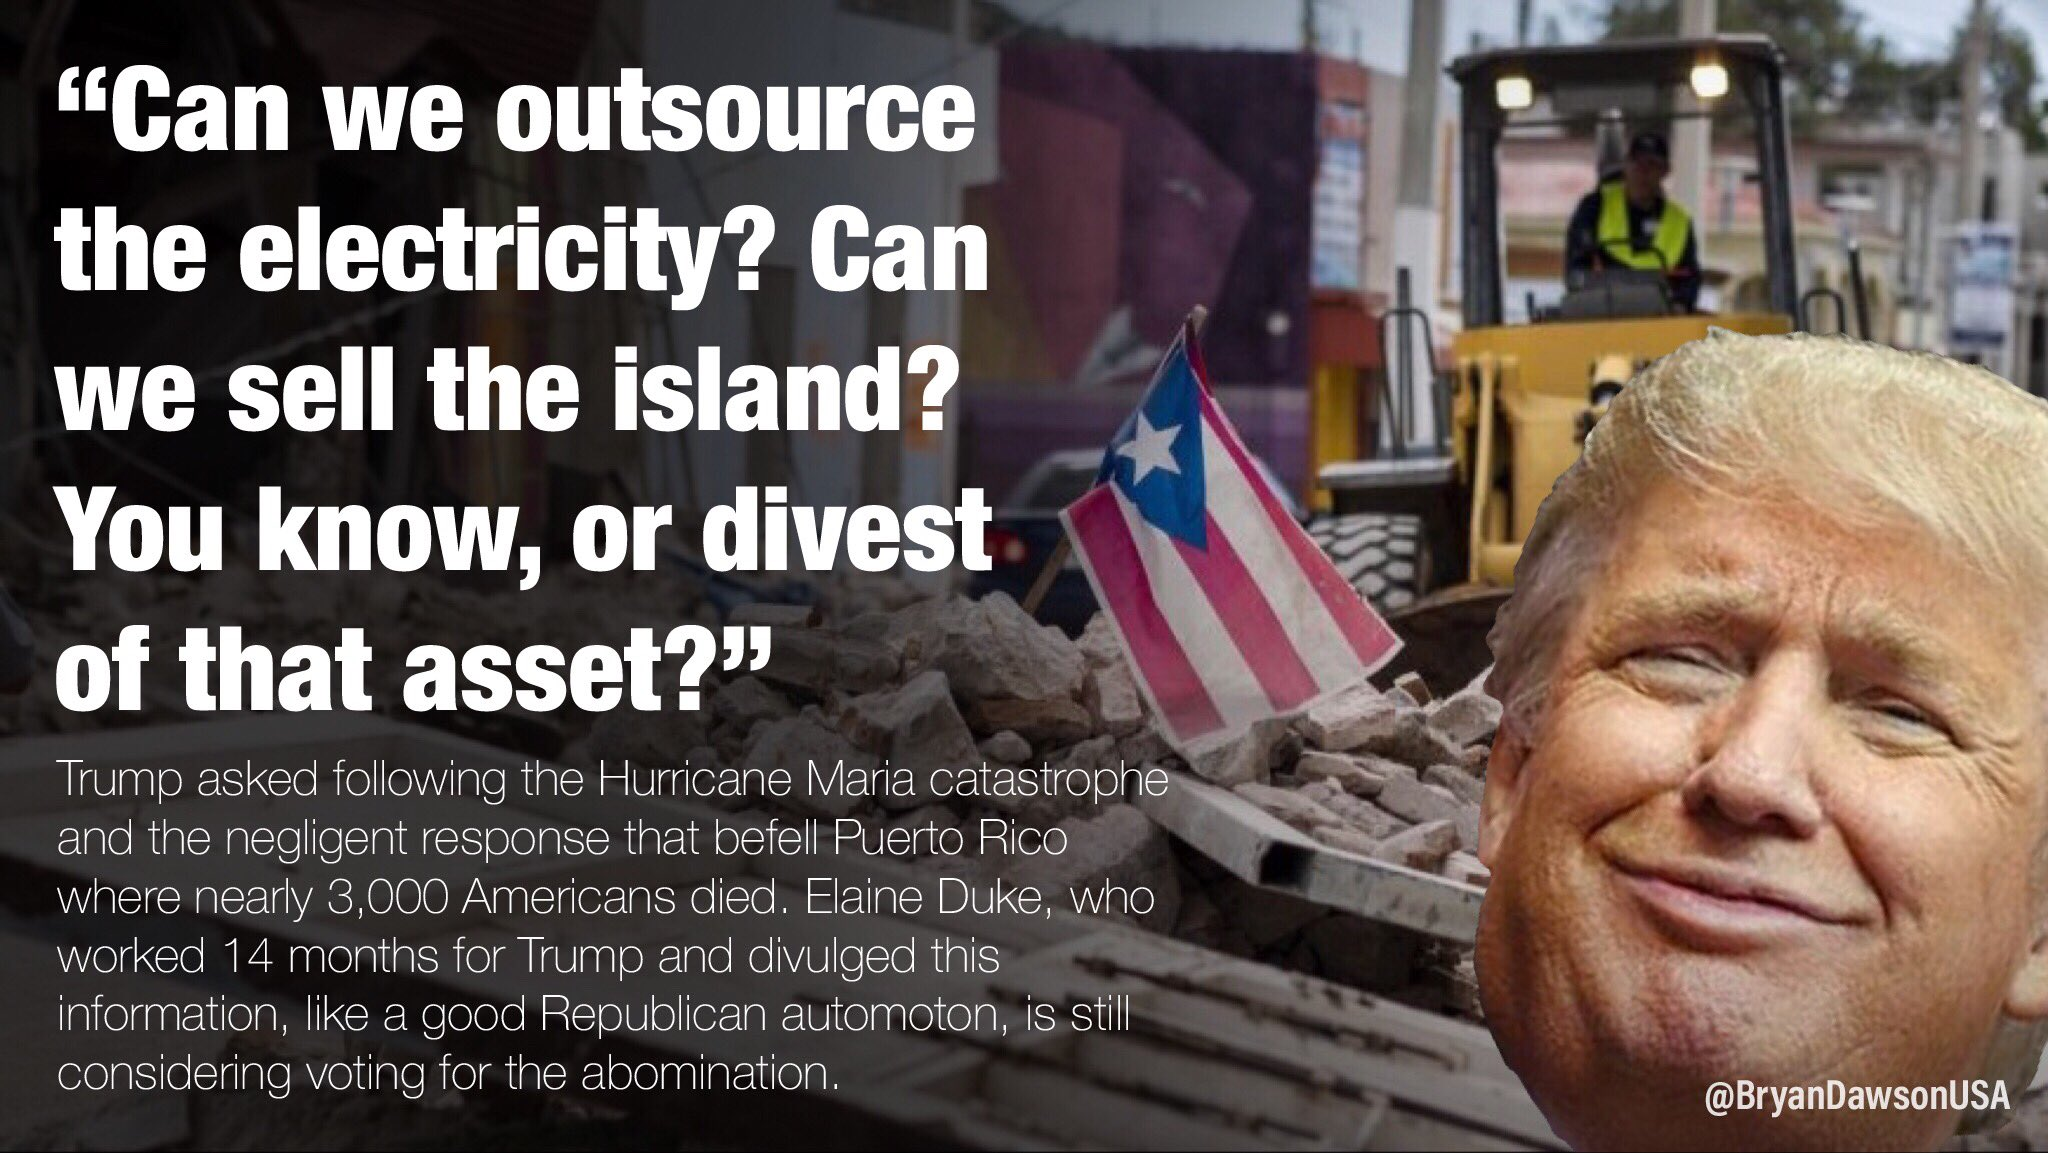 """""""Can we outsource the electricity? Can we sell the island? You know, or divest of that asset?""""  Trump asked following the Hurricane Maria catastrophe and the negligent response that befell Puerto Rico where nearly 3,000 Americans died as divulged by Elaine Duke after working 14 months for Trump. Like a good Republican, @DepSecDuke is still considering voting for the abomination."""